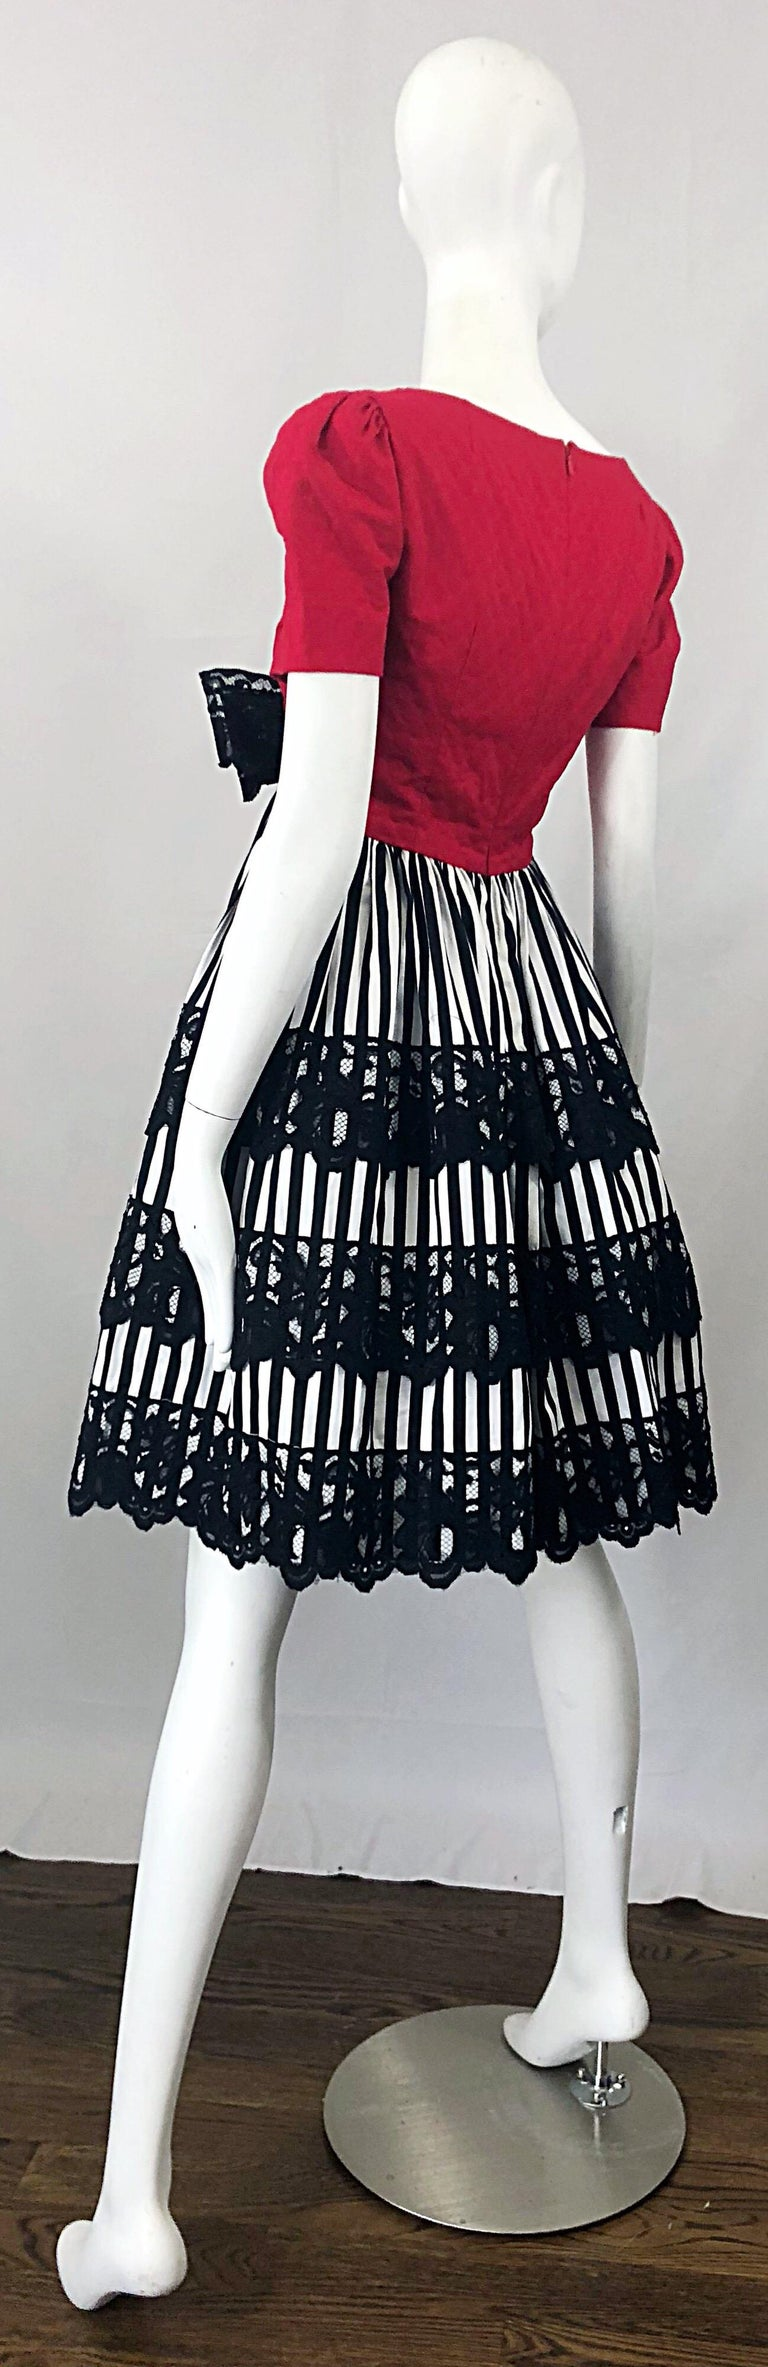 Vintage Adele Simpson Red + Black + White Fit n' Flare Empire Bow Lace Dress For Sale 7